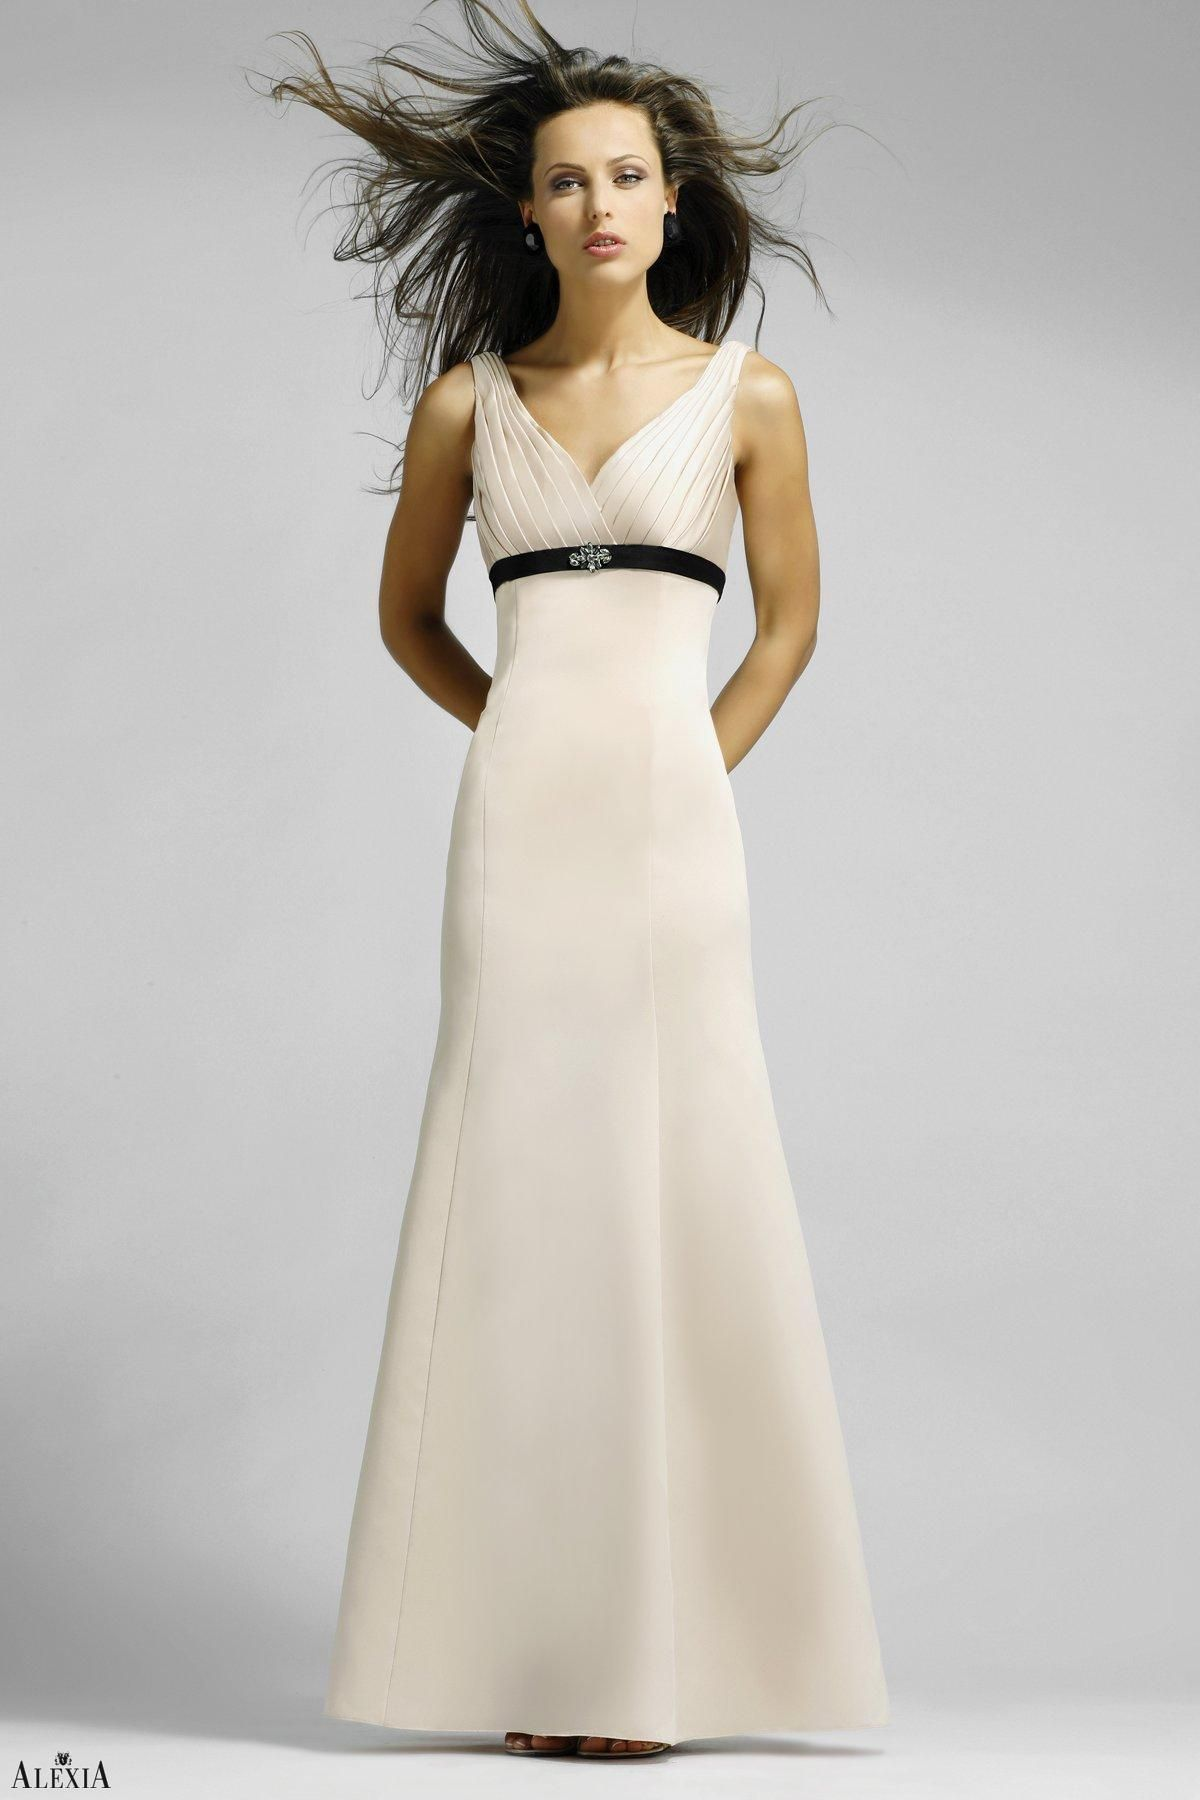 Twotone matte satin aline bridesmaids gown with beading comes